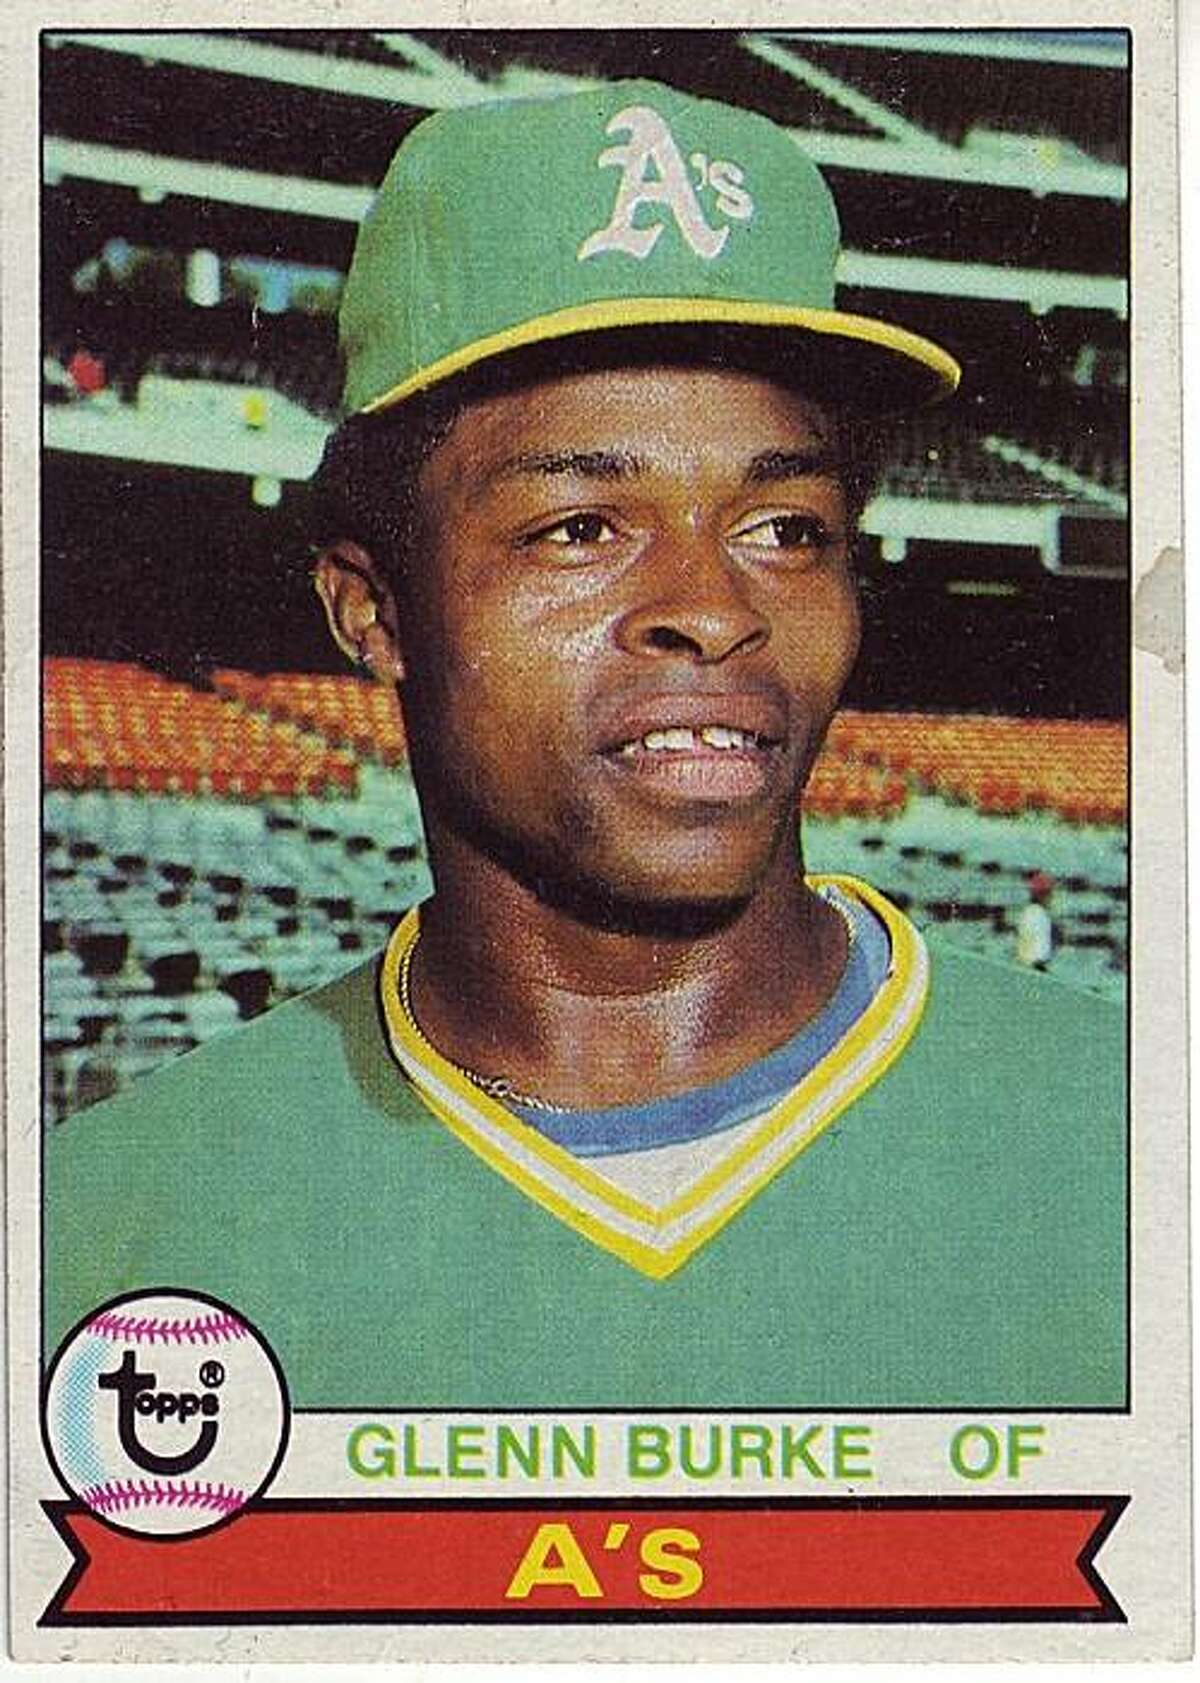 Glenn Burke played for the Los Angeles Dodgers and Oakland A's, and was also a star in the first Gay Games.